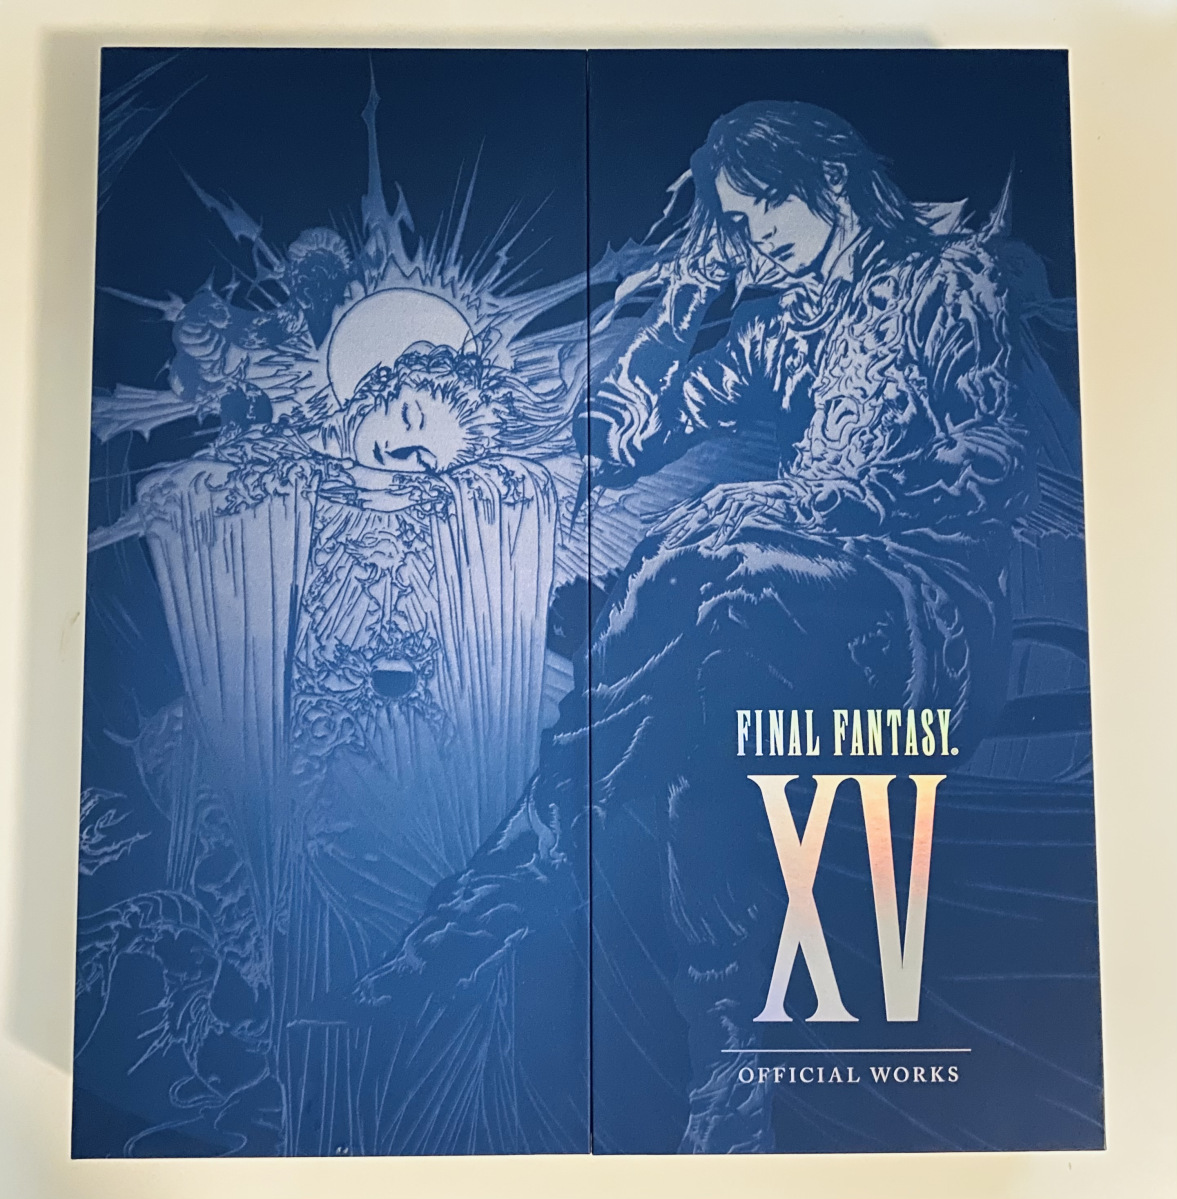 Featured image for Final Fantasy XV Official Works Limited Edition